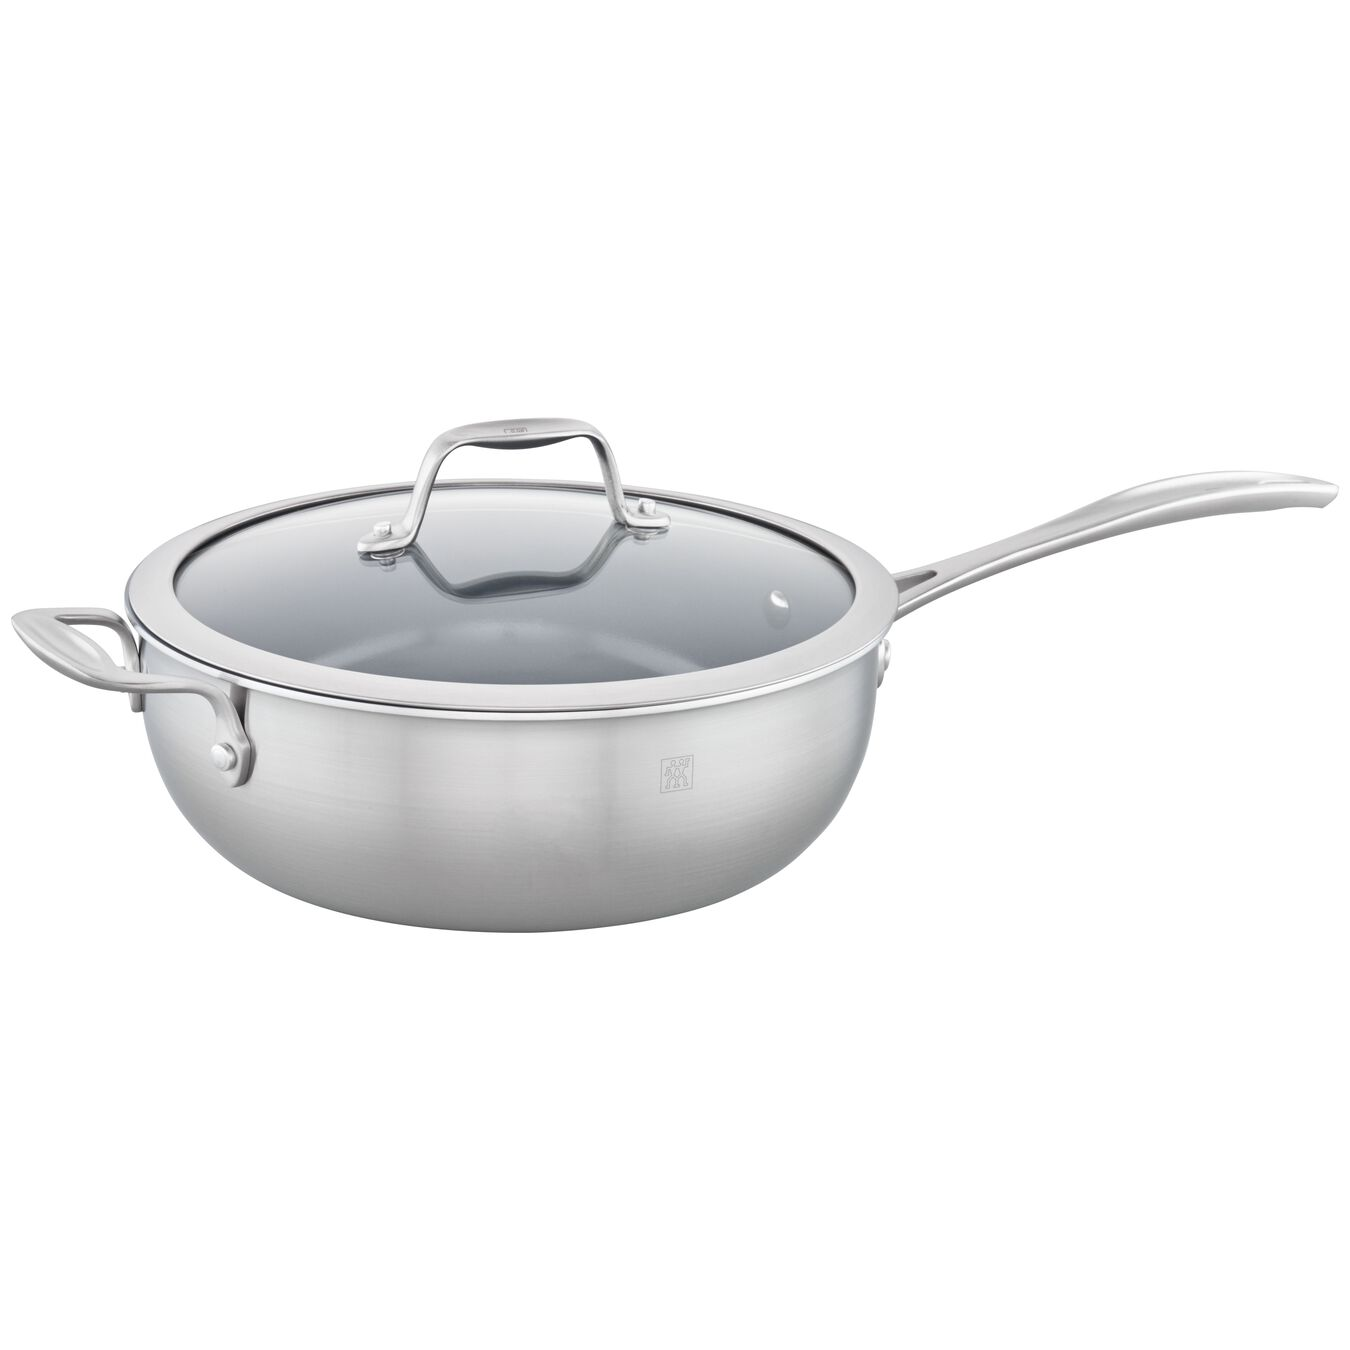 3-ply 4.6-qt Stainless Steel Ceramic Nonstick Perfect Pan,,large 1